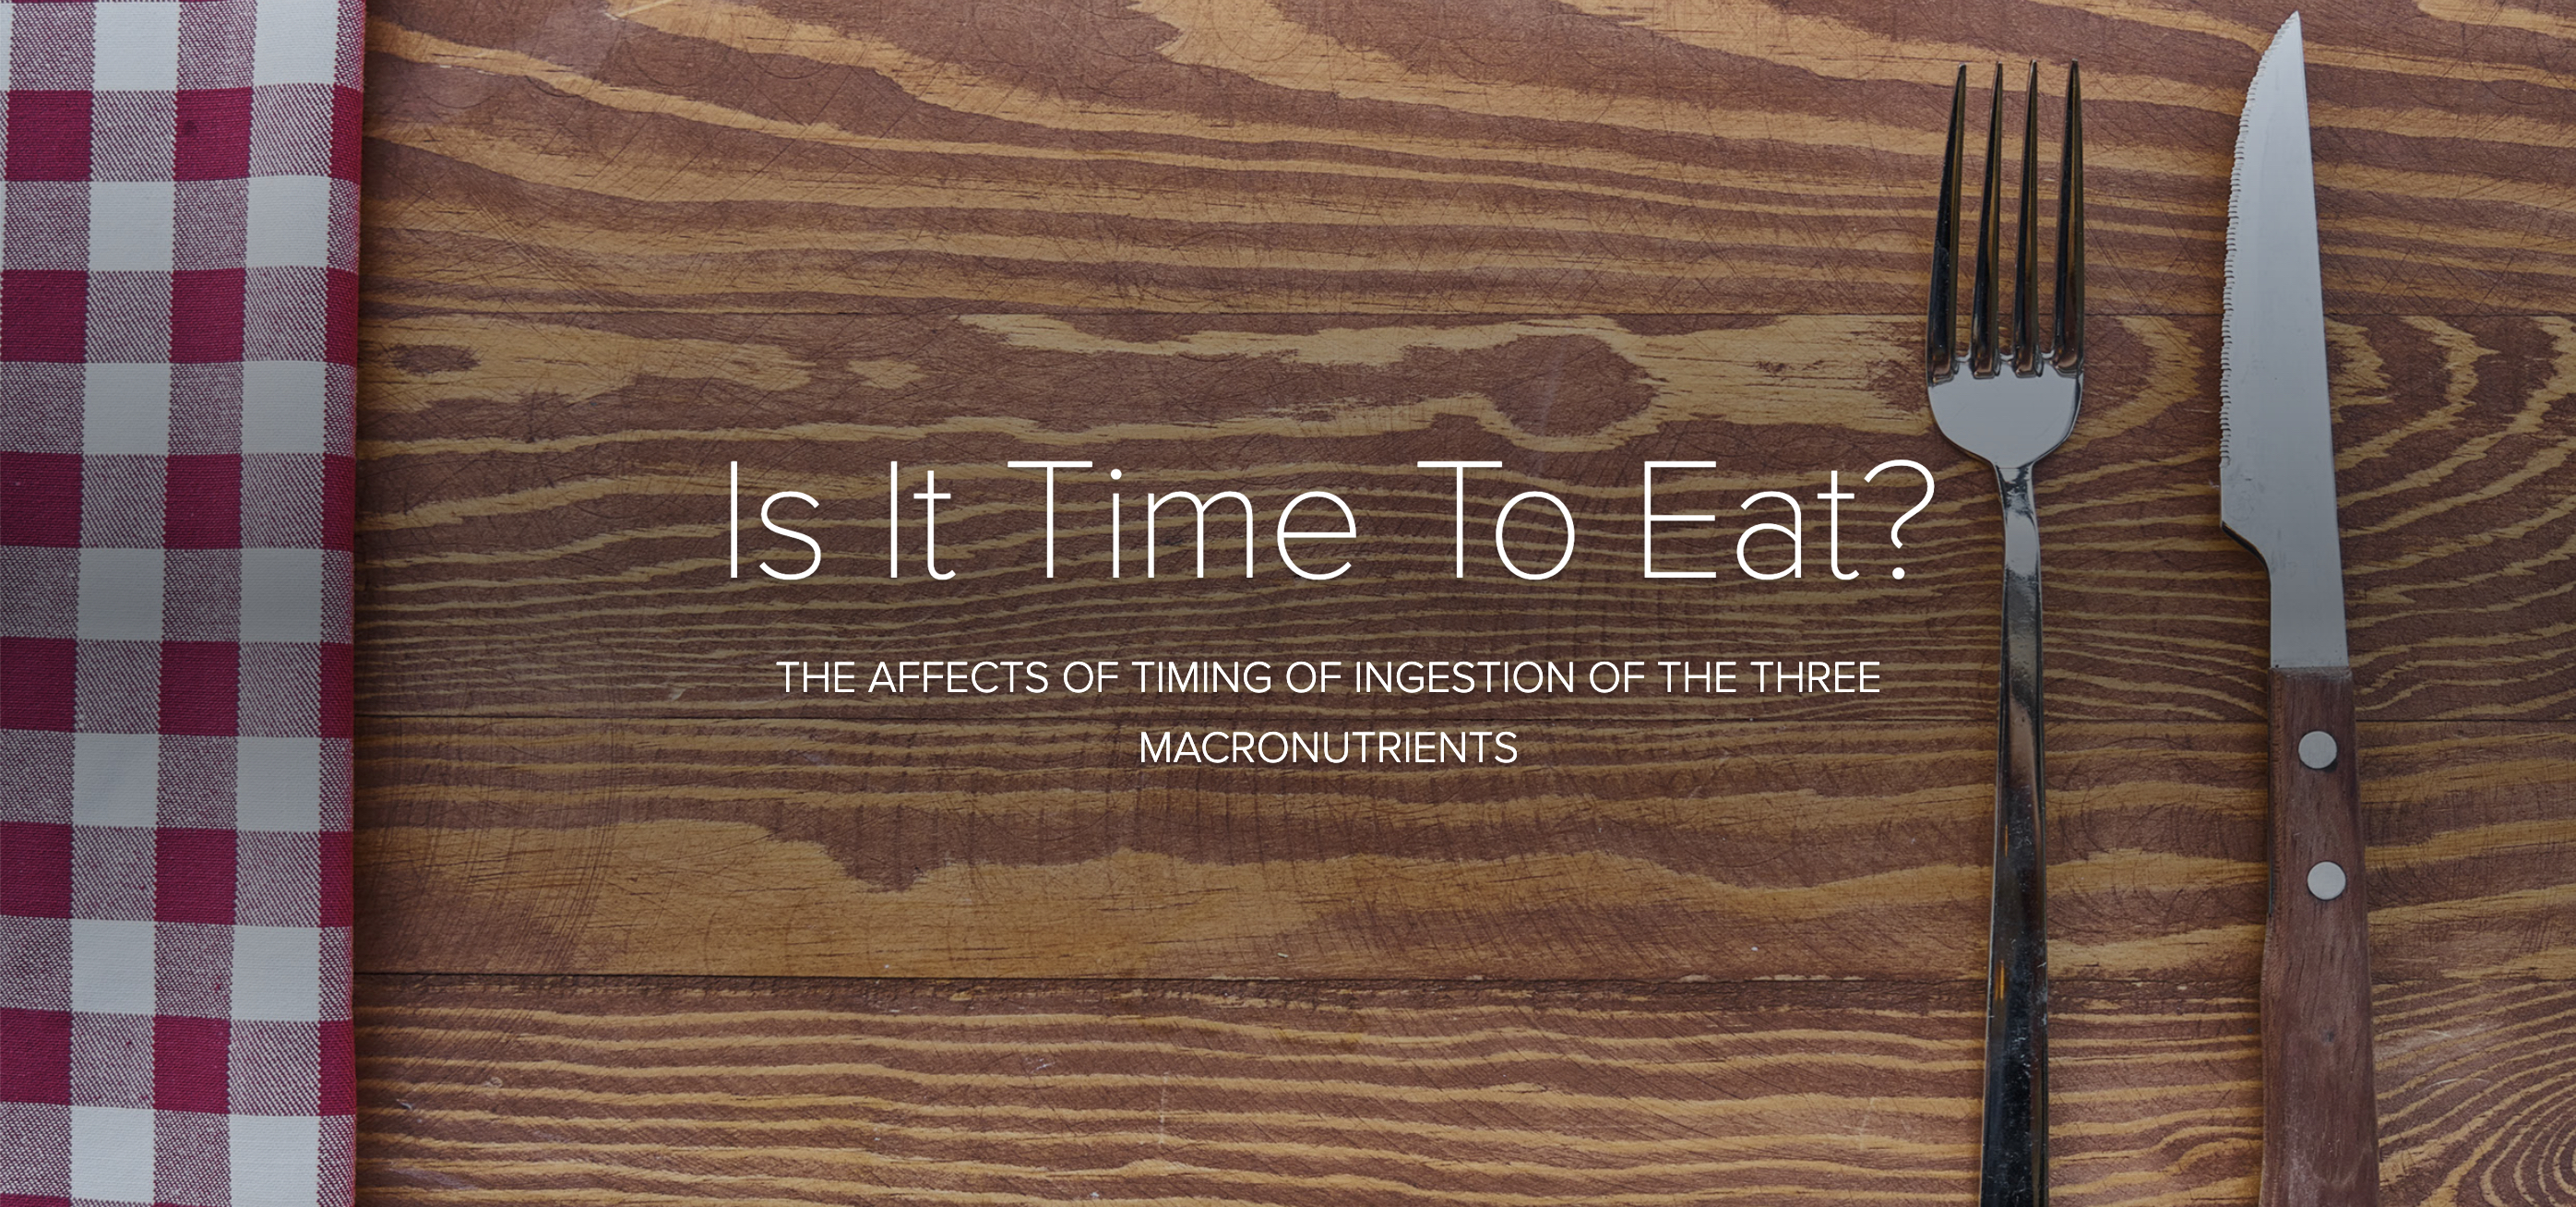 Is It Time To Eat? The Effects of Timing of Ingestion of Macronutrients